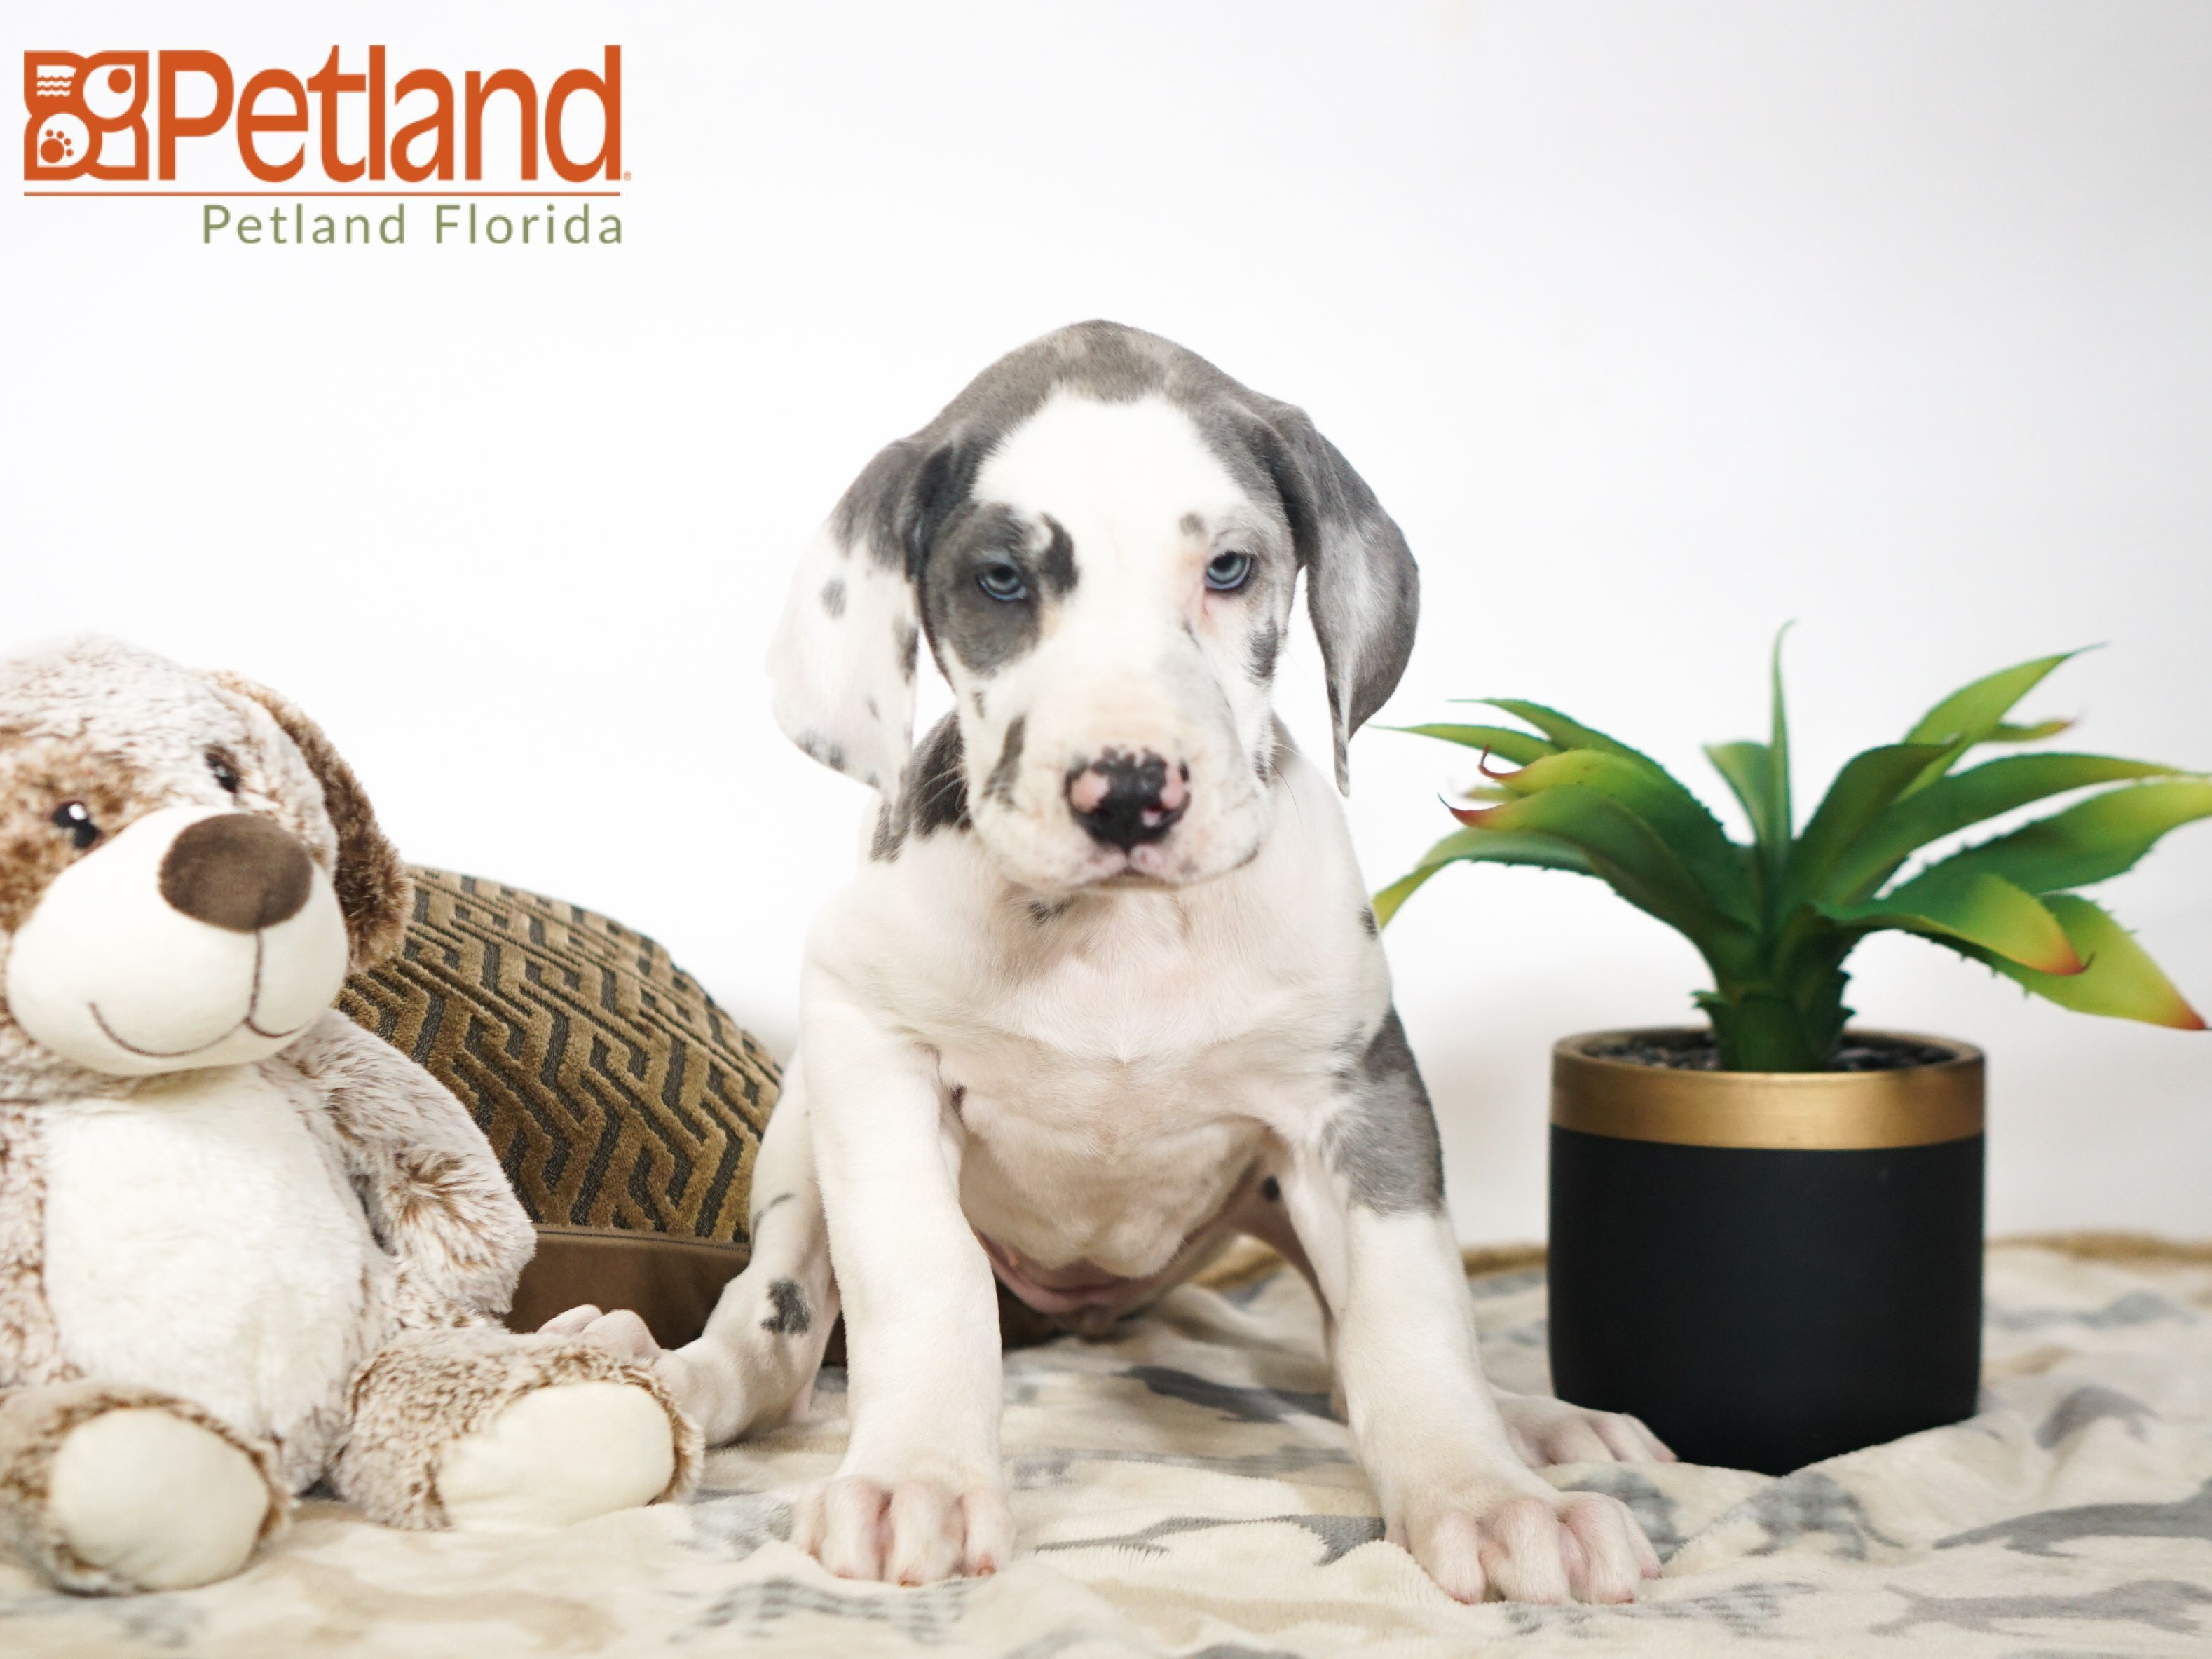 Petland Florida has Great Dane puppies for sale! Check out